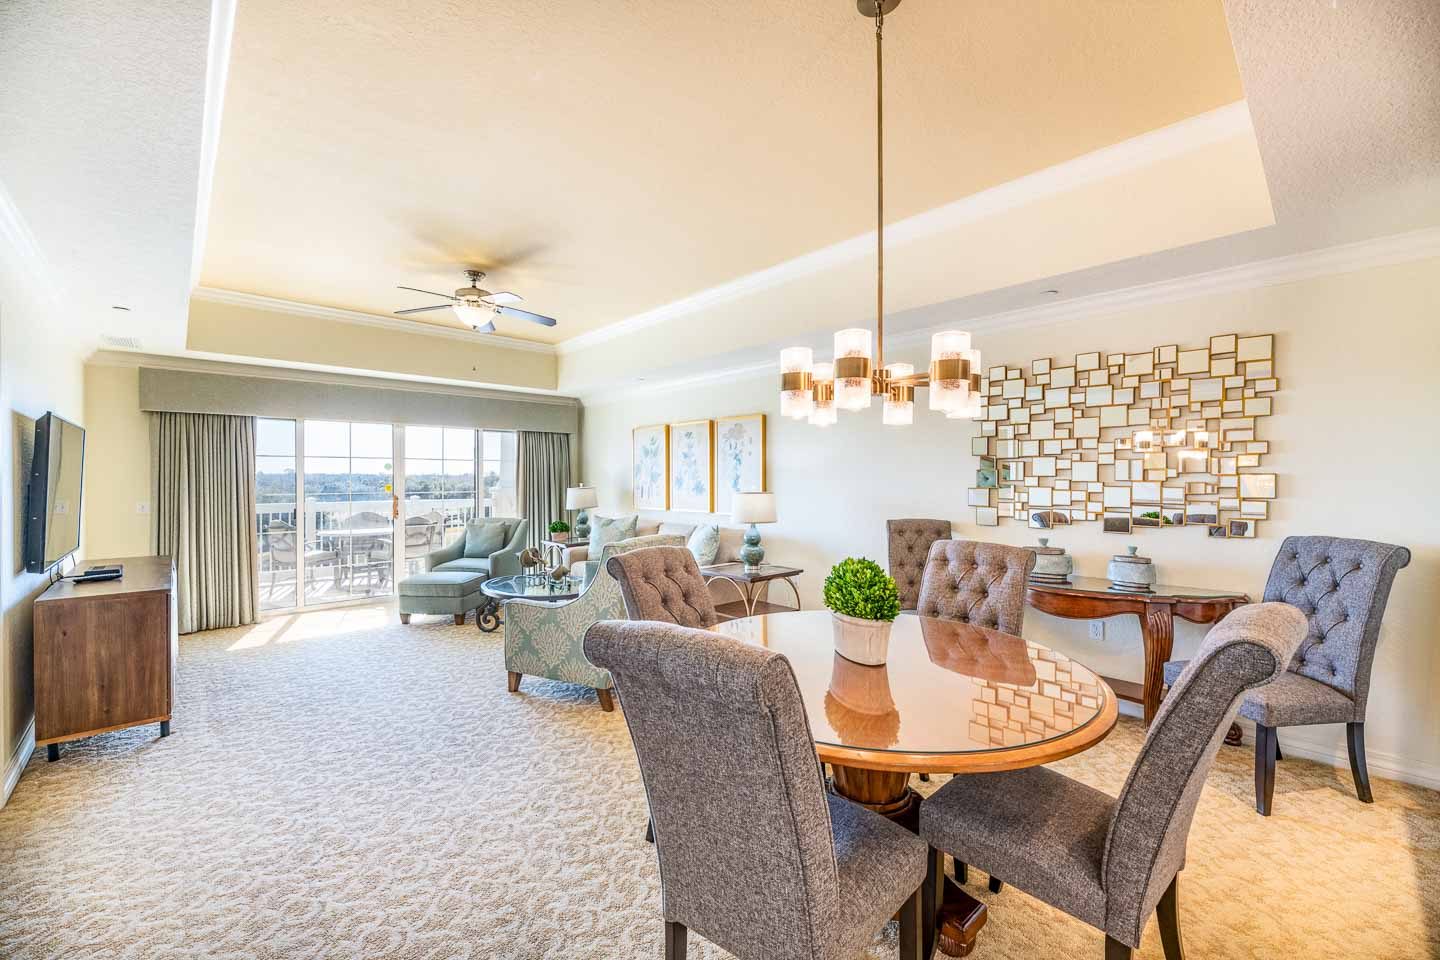 The Welcoming Golf Condo-195350